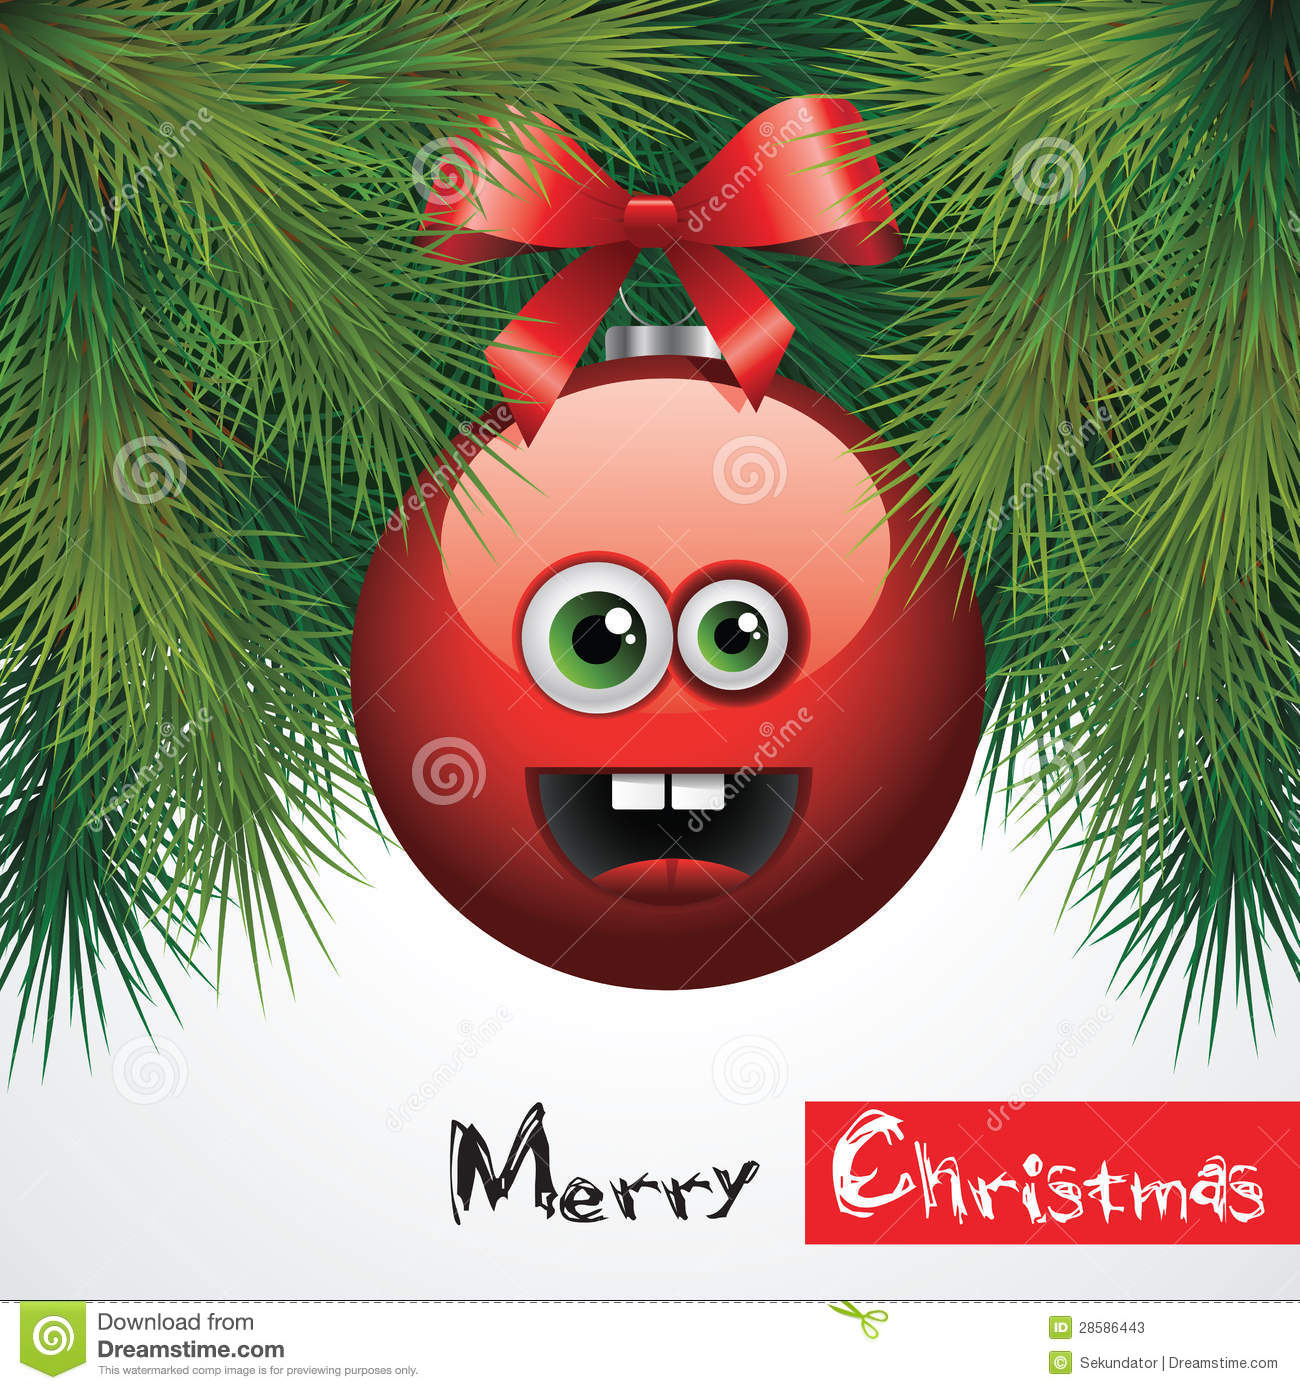 Lustige Weihnachtskugeln.Funny Christmas Ball Stock Vector Illustration Of Graphic 28586443